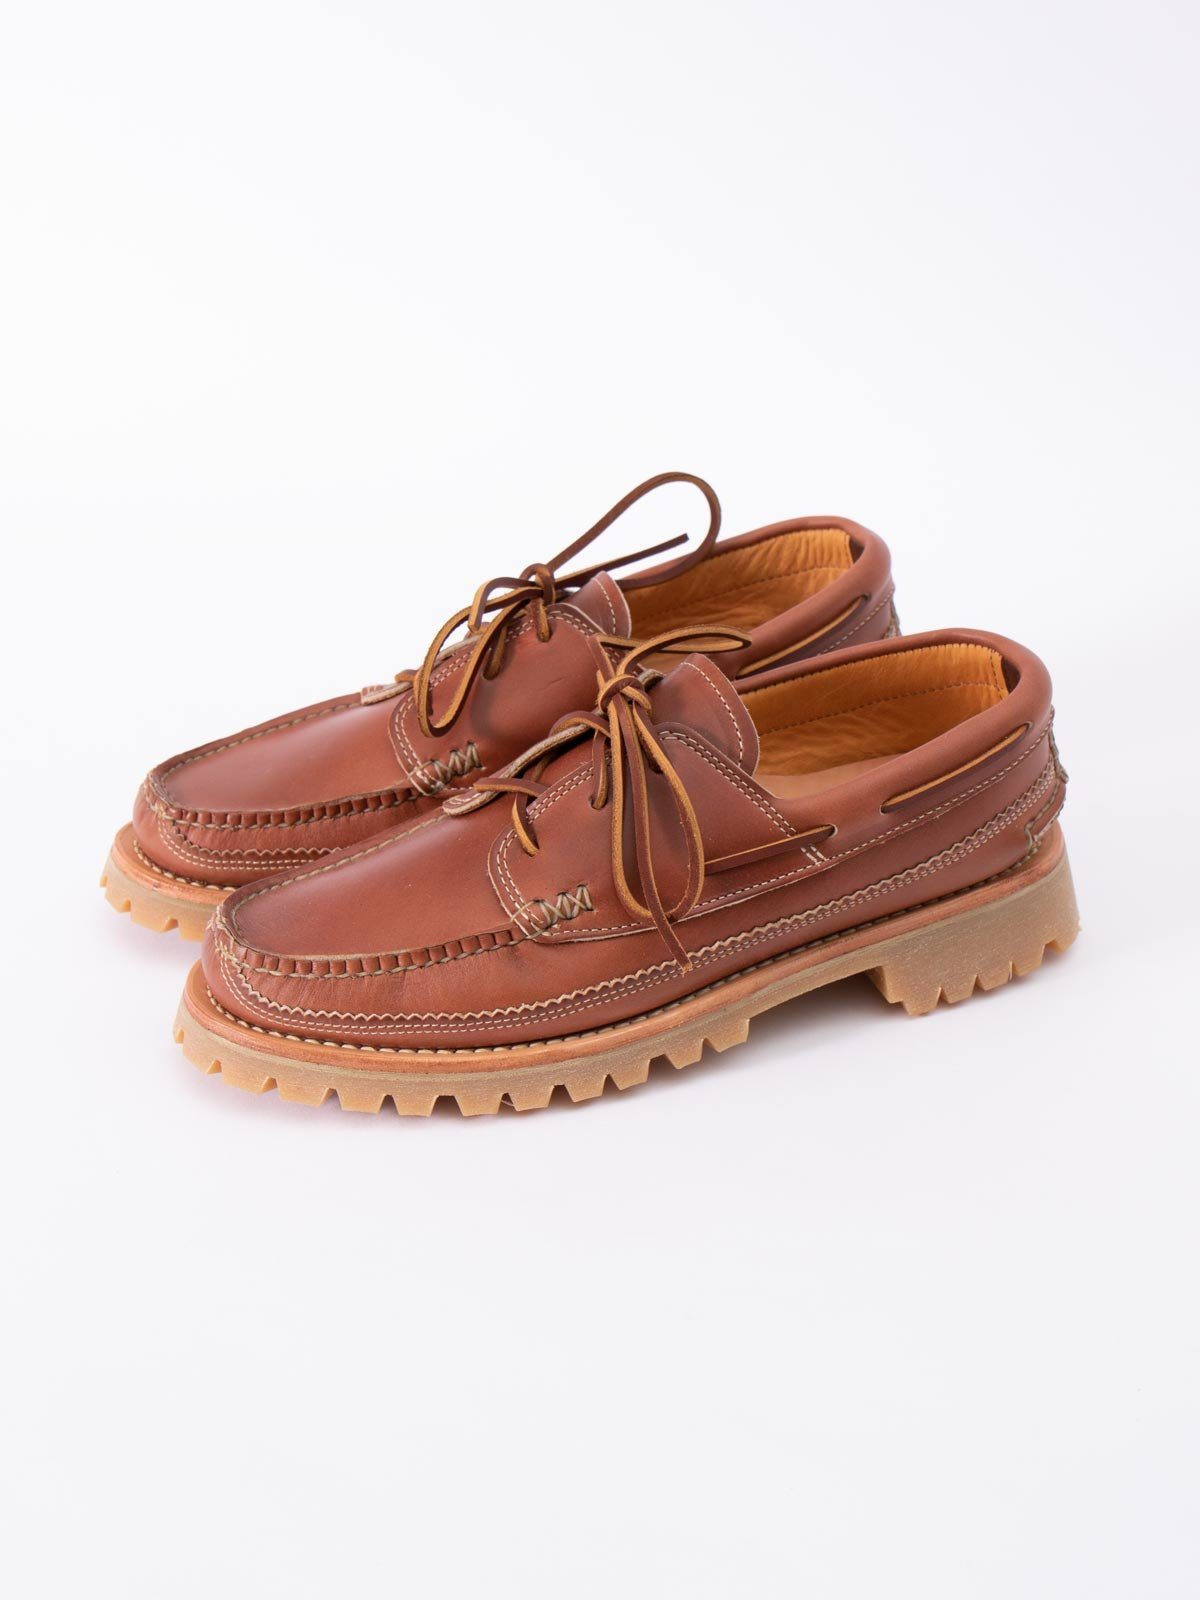 C WHISKEY DB BOAT SHOE W/ LUG SOLE EXCLUSIVE - Image 2